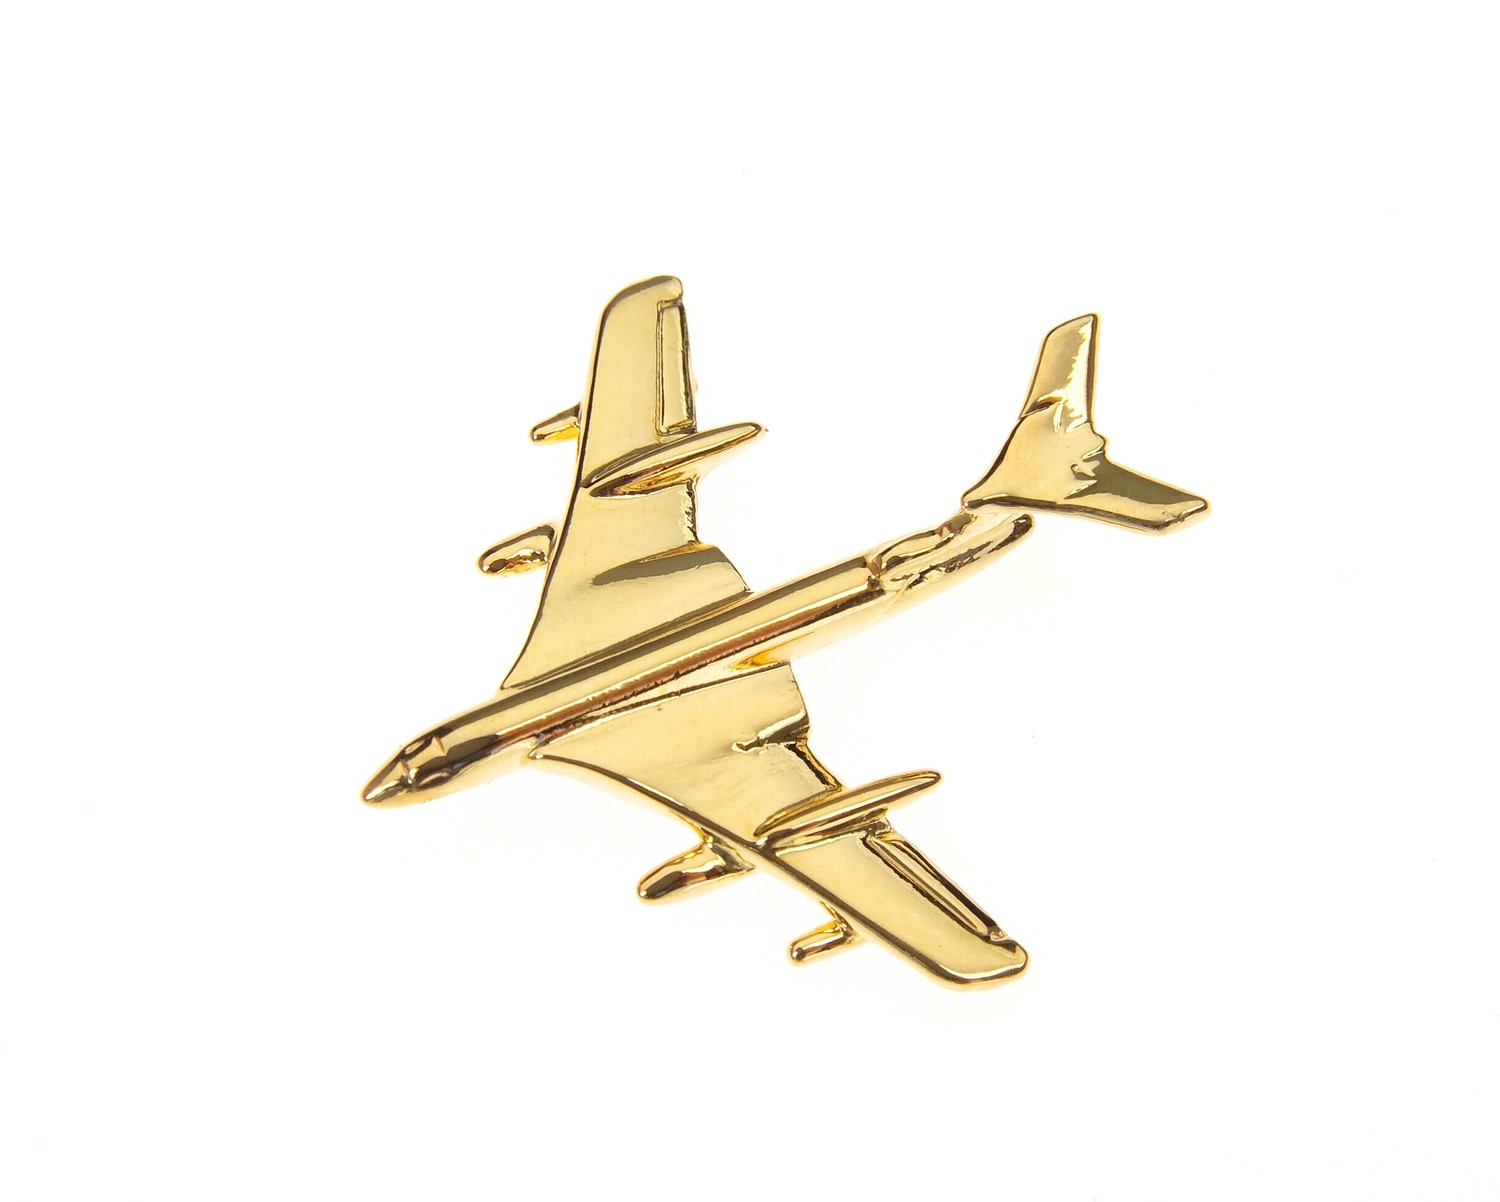 Victor Gold Plated Tie / Lapel Pin